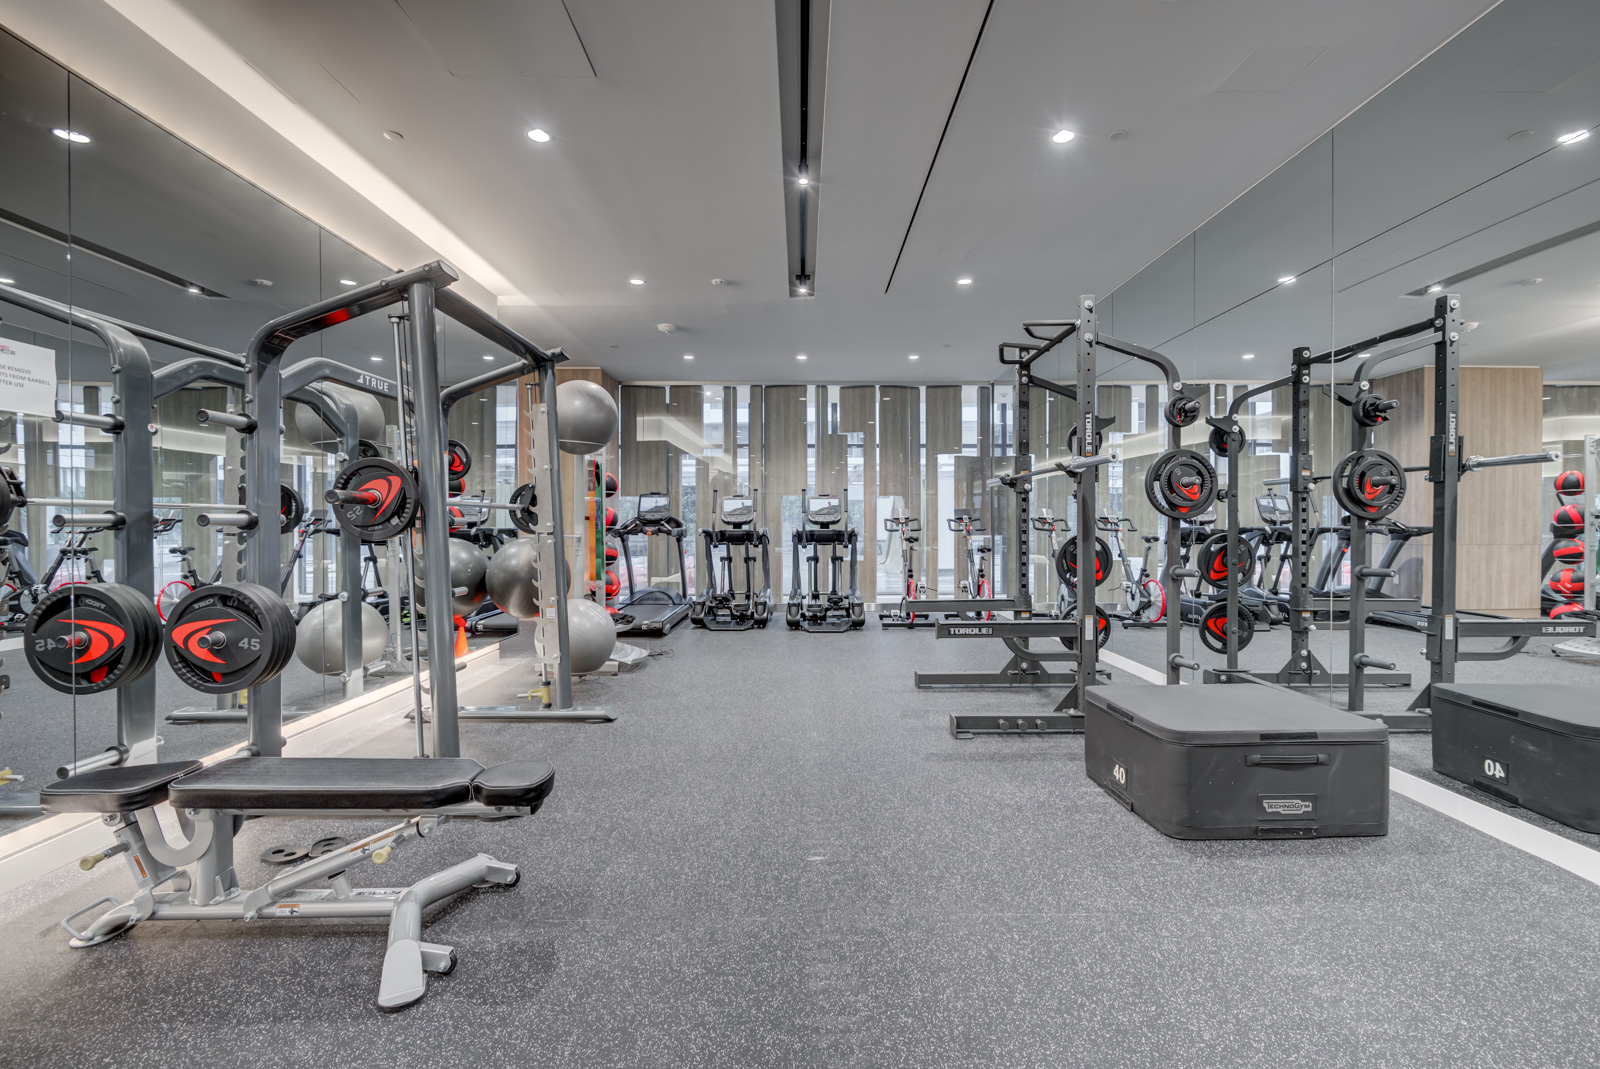 Modern gym at Minto Condos with weights, treadmills, exercise bikes and exercise balls.